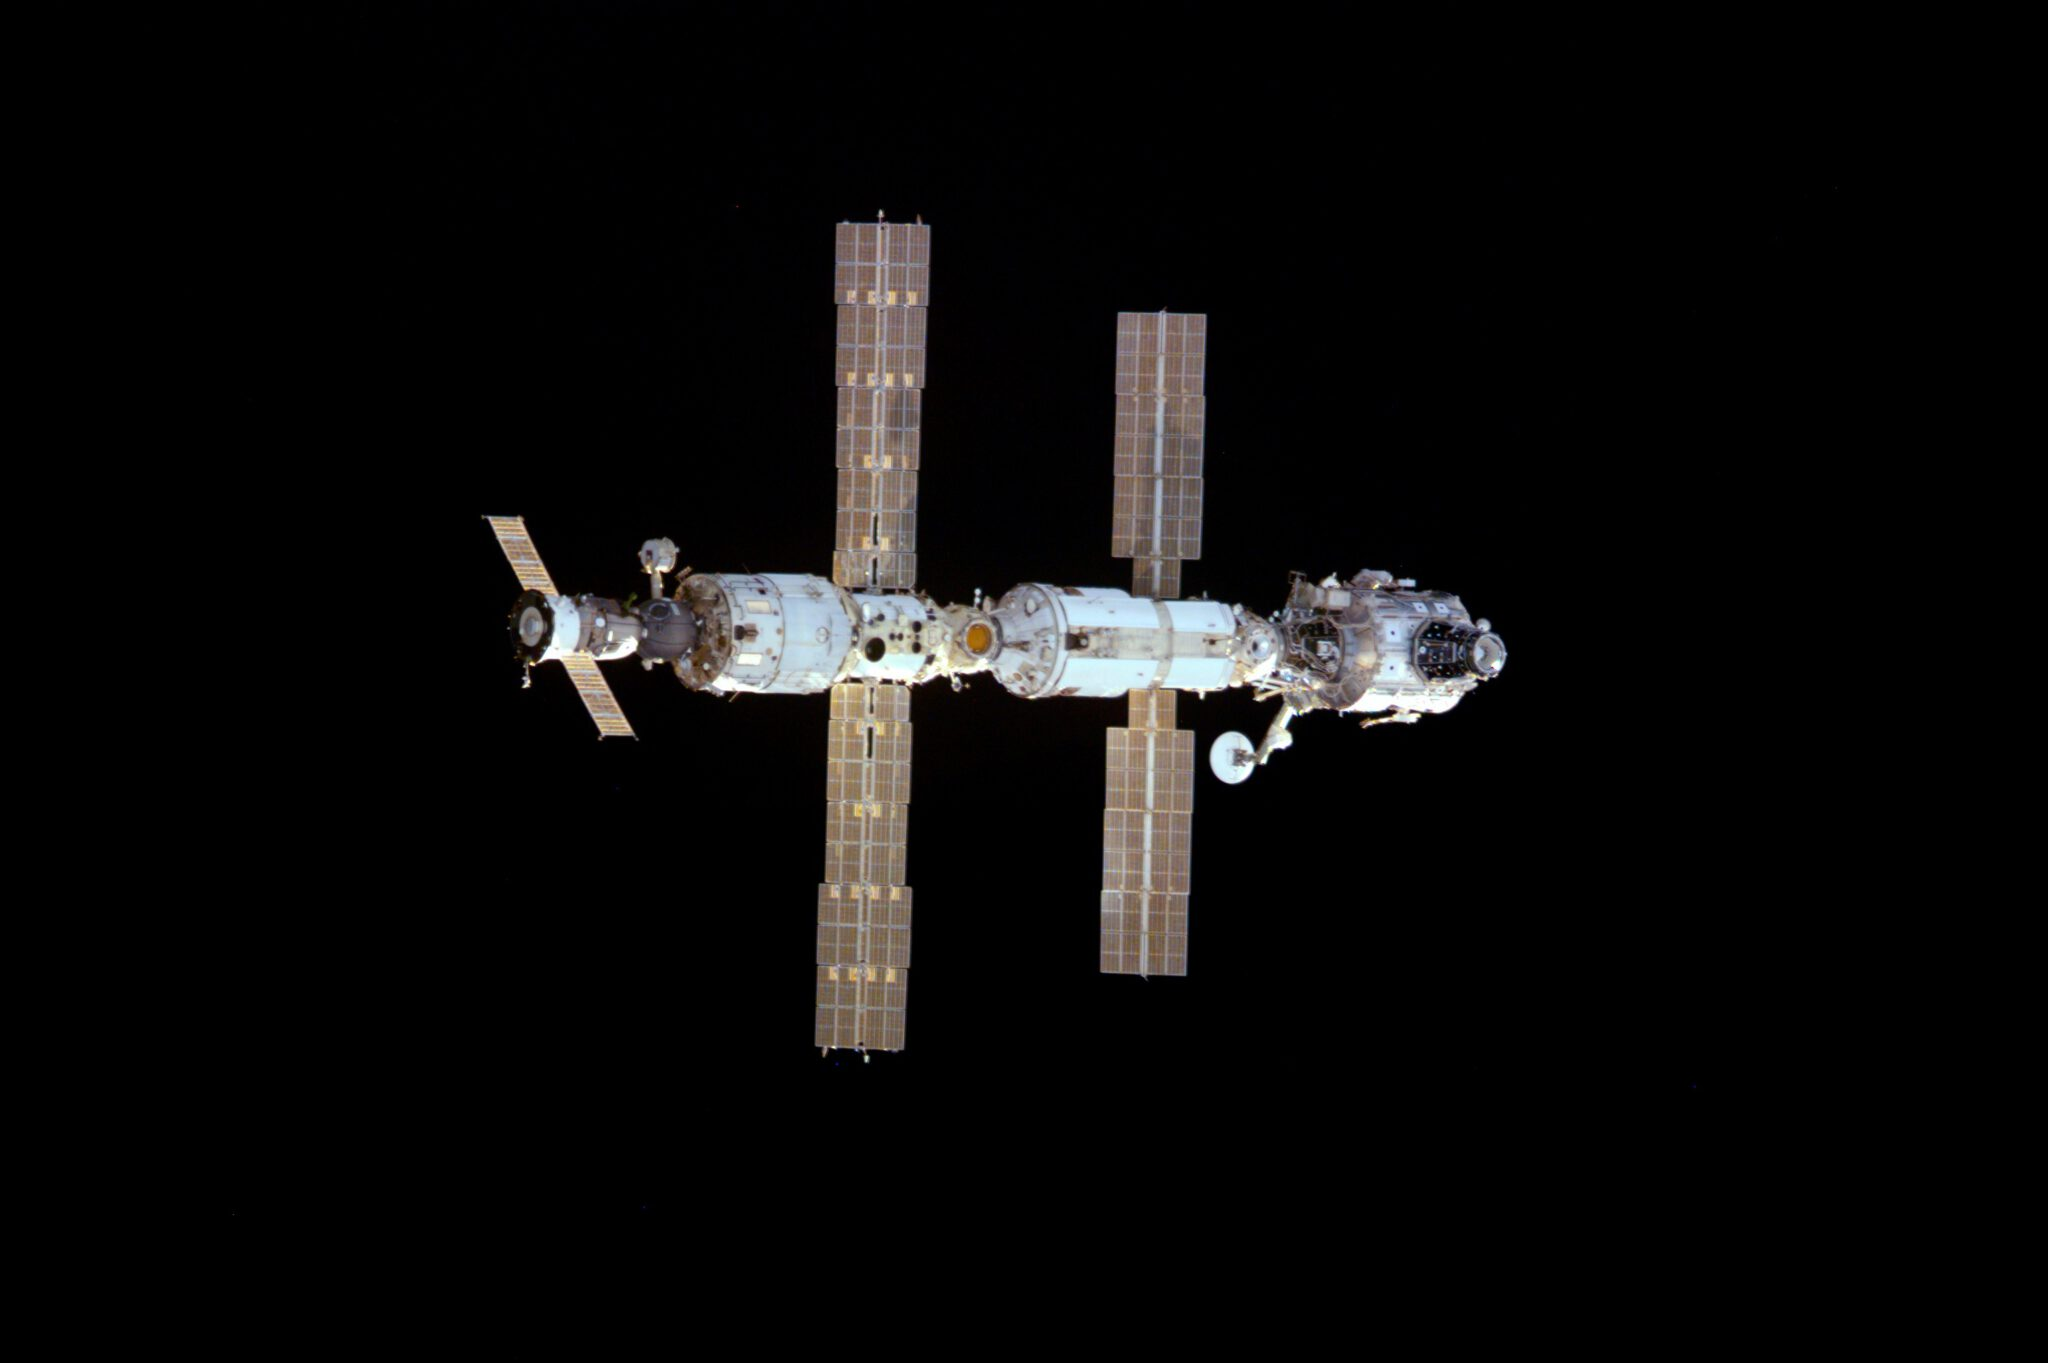 Info Shymkent - 20 years humans in space (Image: NASA)